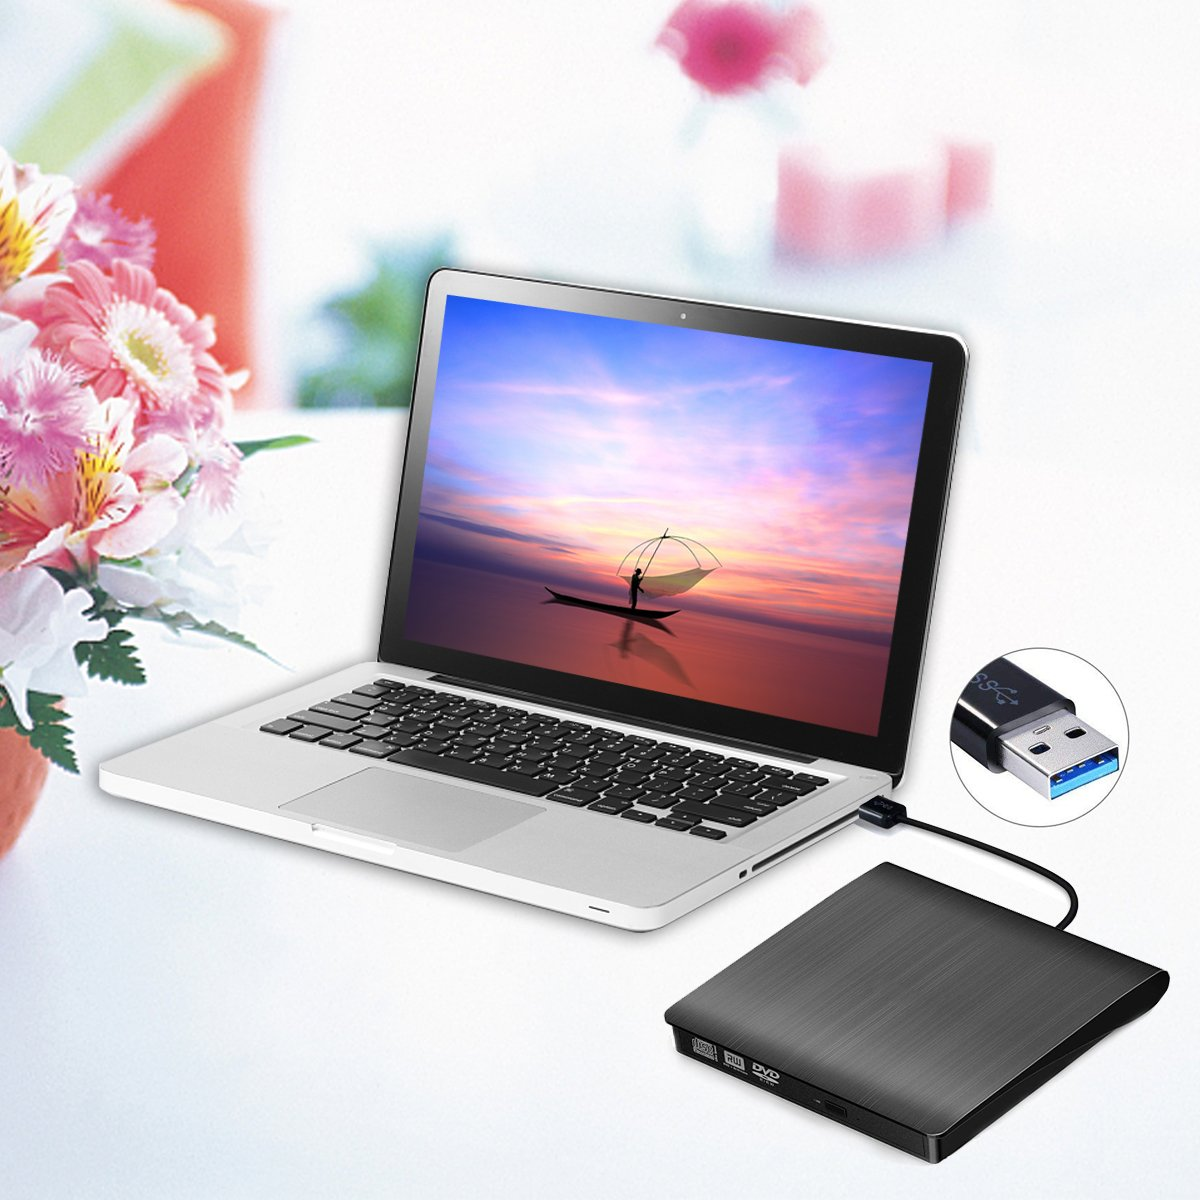 External DVD Drive, SUMBOAT USB 3.0 Portable Slim DVD CD Rom Burner Rewriter Driver,High Speed Data Transfer for Laptop Mac 10 OS Windows XP /2003/Vista/Win 7/ Win 8/Win 10 Linux by SUMBOAT (Image #7)